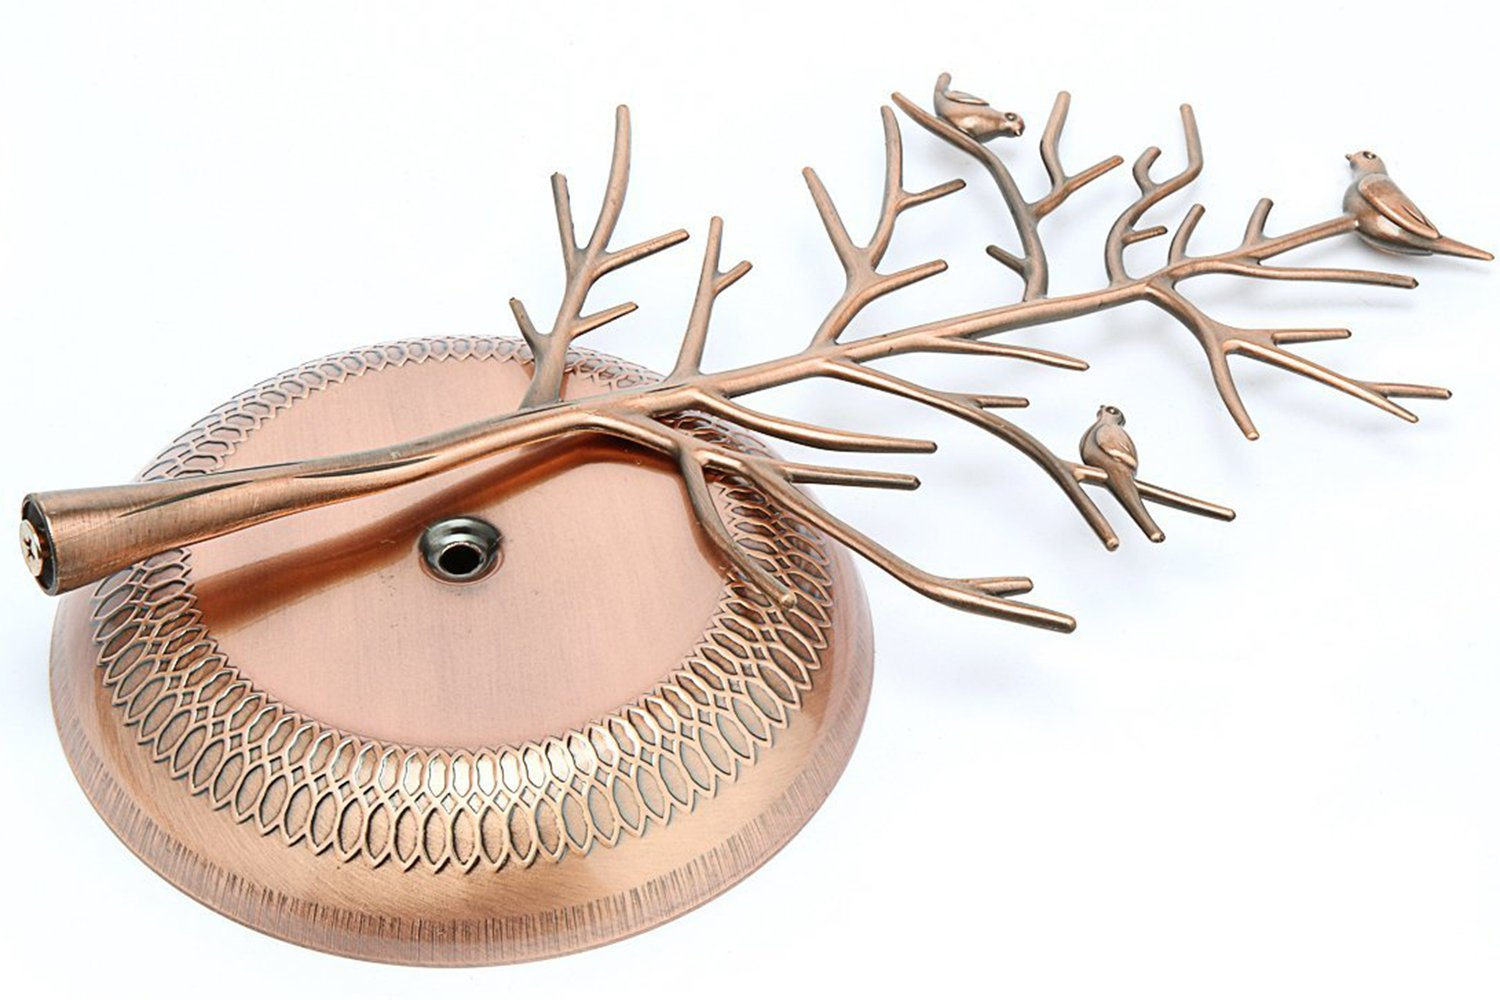 WELL-STRONG Earring Ring Holder Necklace Bird Decoration Jewelry Tower Tree for Girl Bronze by WELL-STRONG (Image #6)